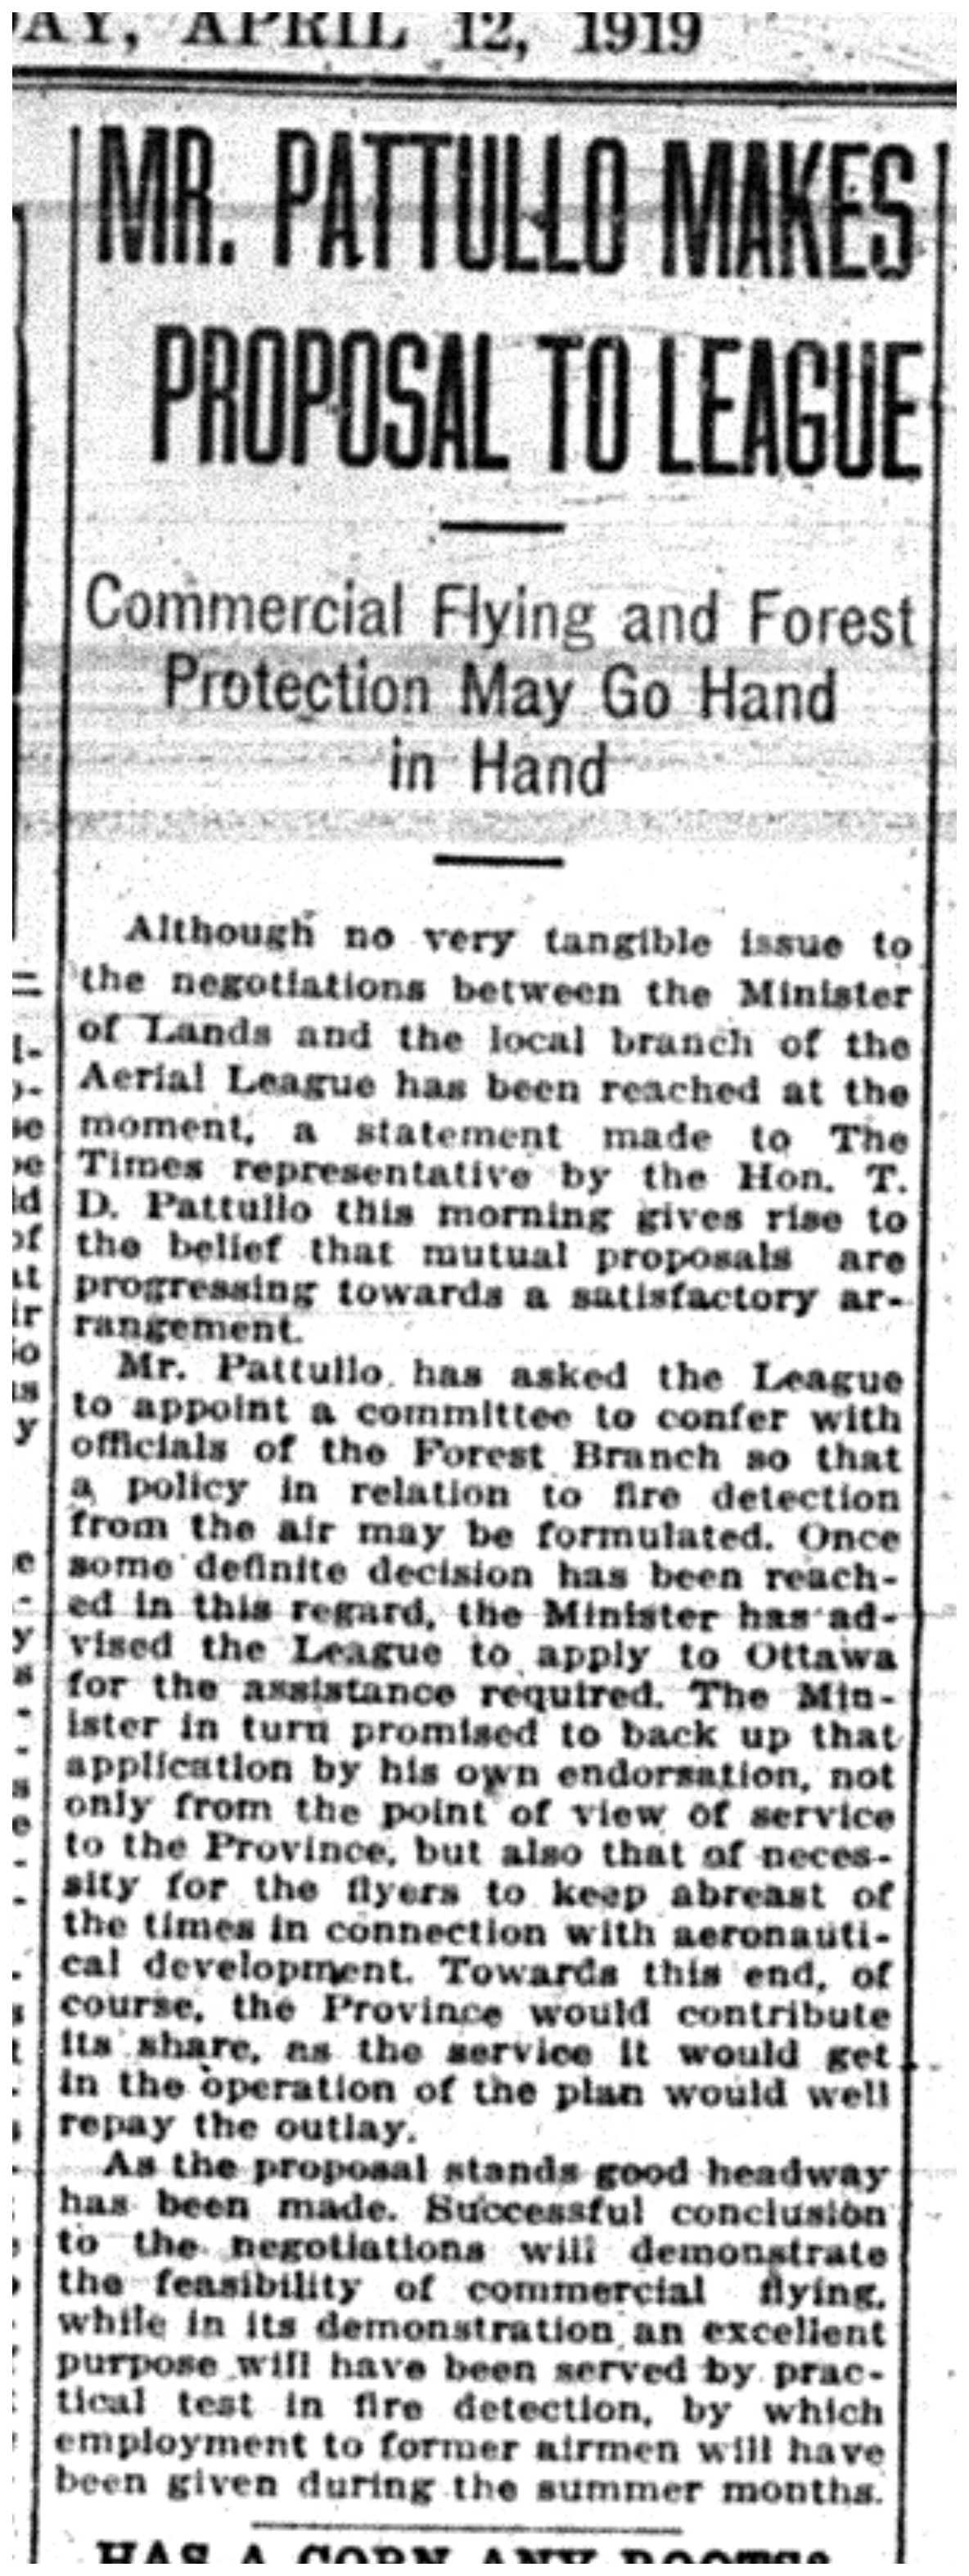 """""""Mr. Pattullo Makes Proposal to League: Commercial Flying and Forest Protection May Go Hand in Hand""""-"""